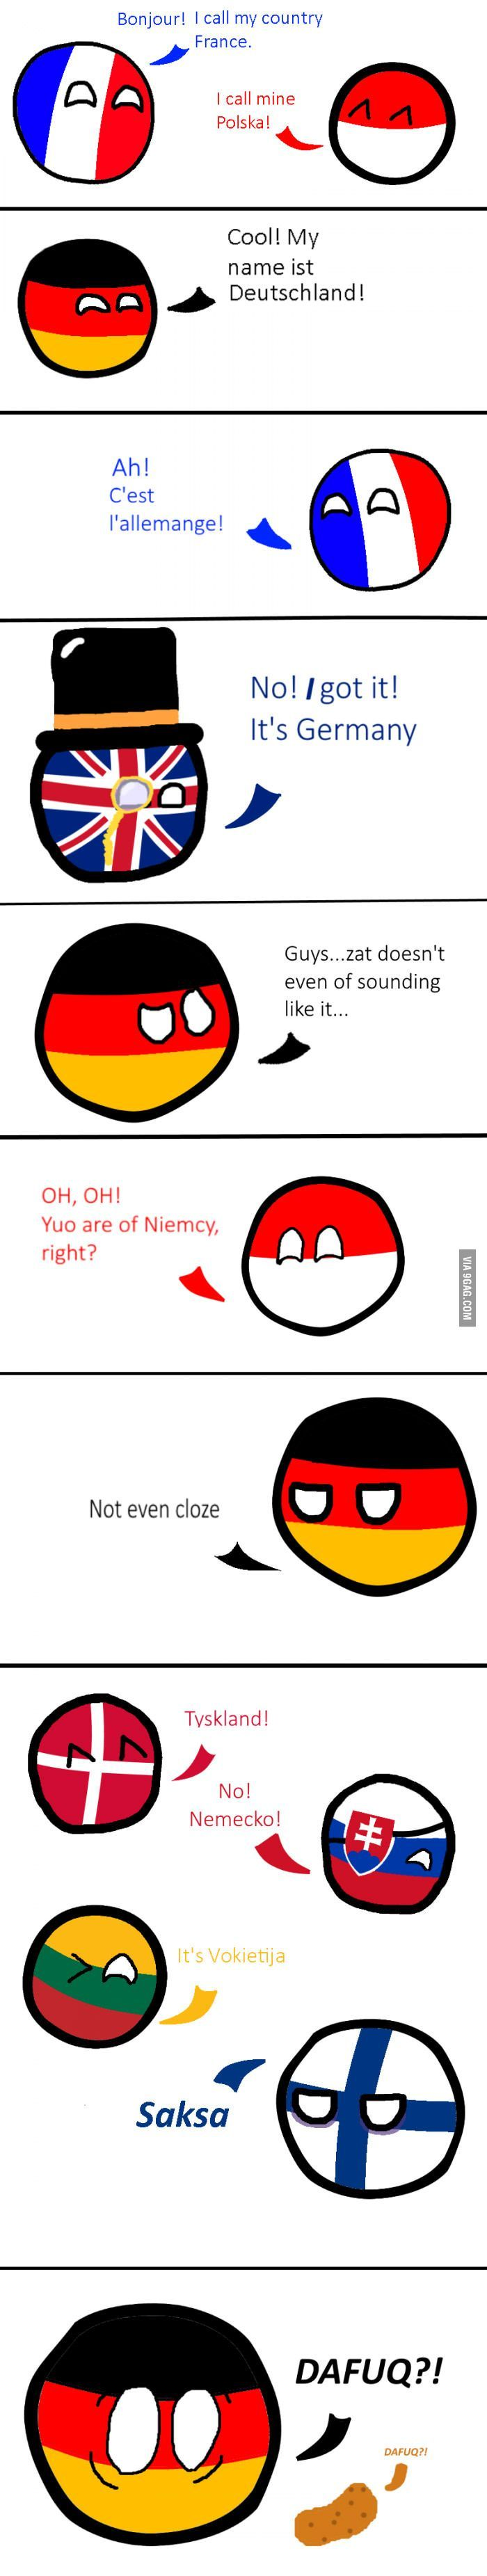 Germany and its names ... - #Germany #Names # its #and